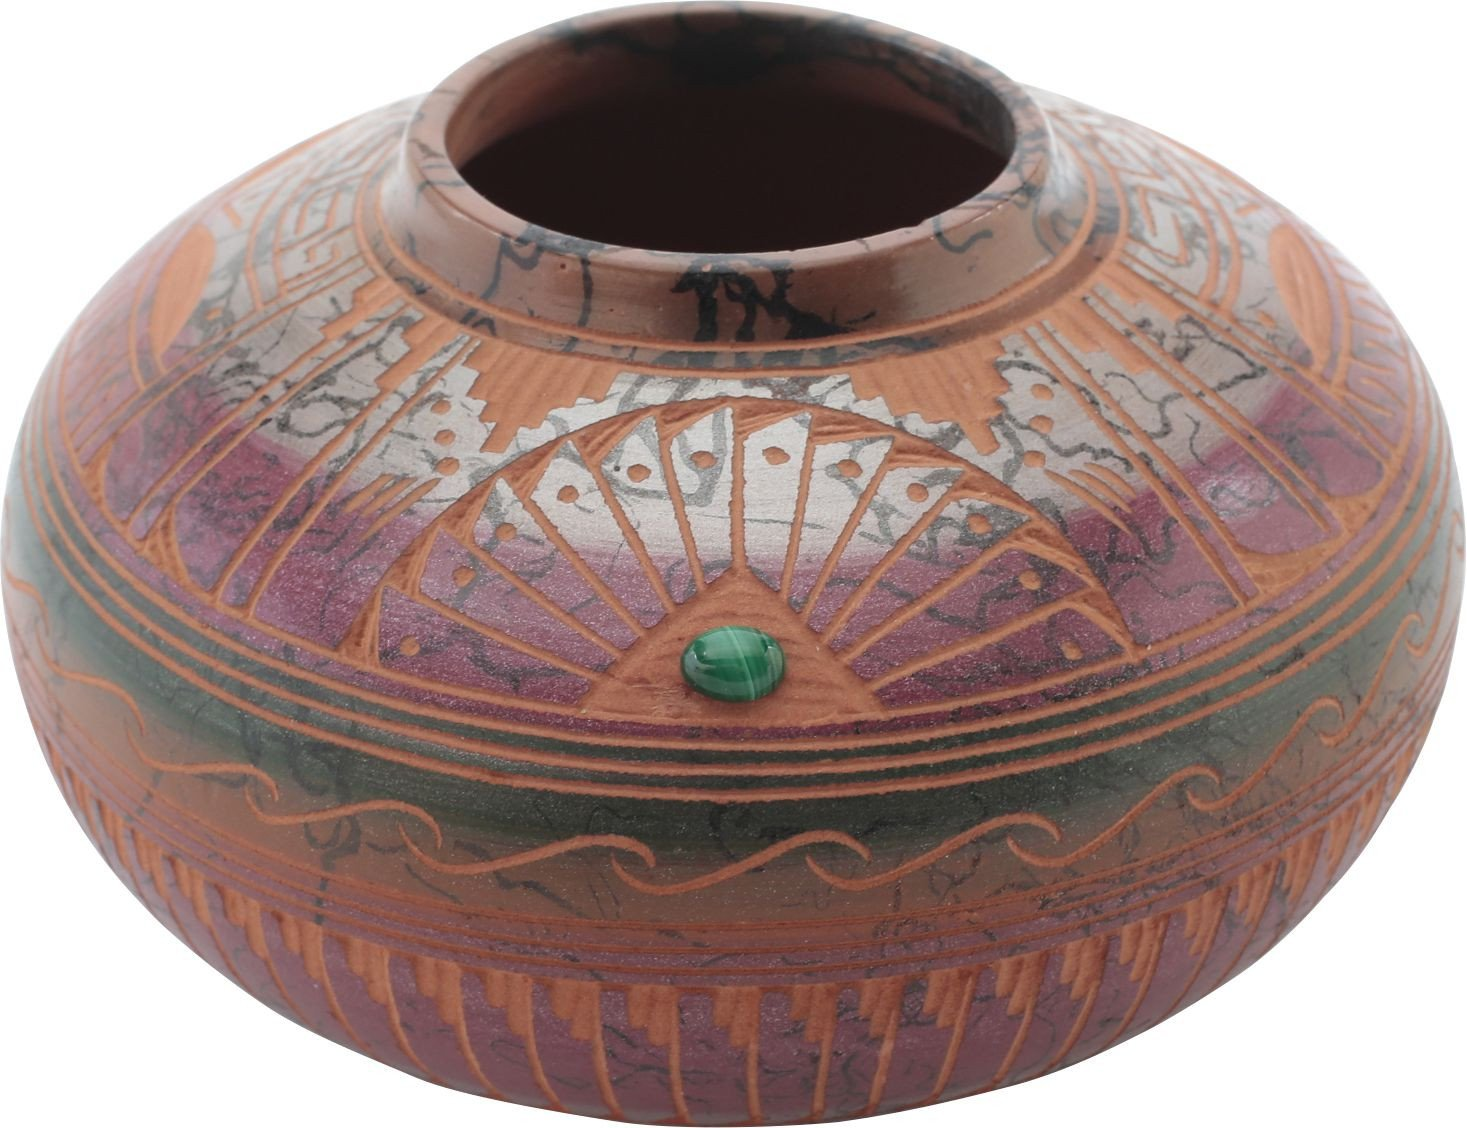 Navajo Jar In The Pueblo Style - Product